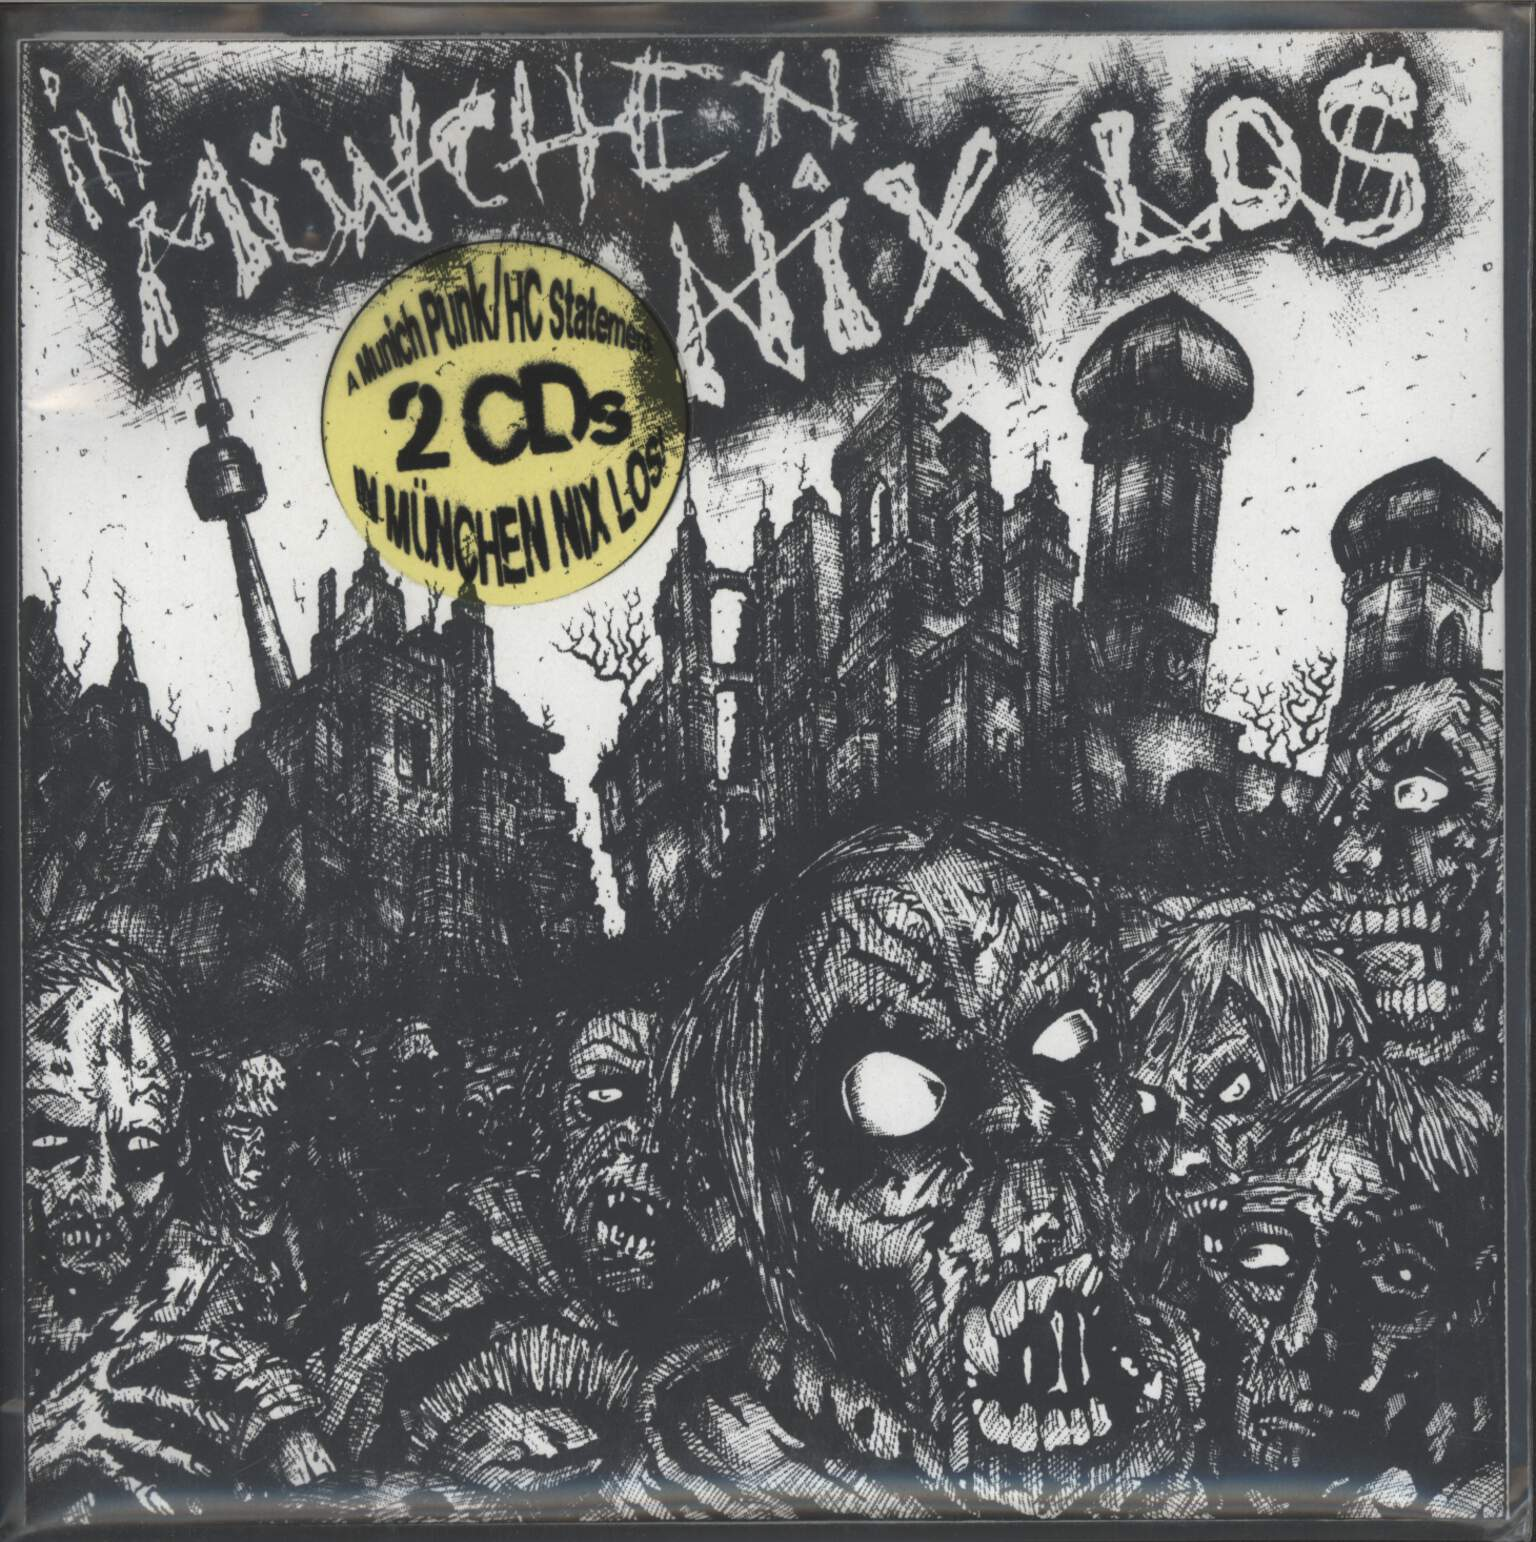 Various: In München Nix Los! A Munich Punk / HC Statement, CD